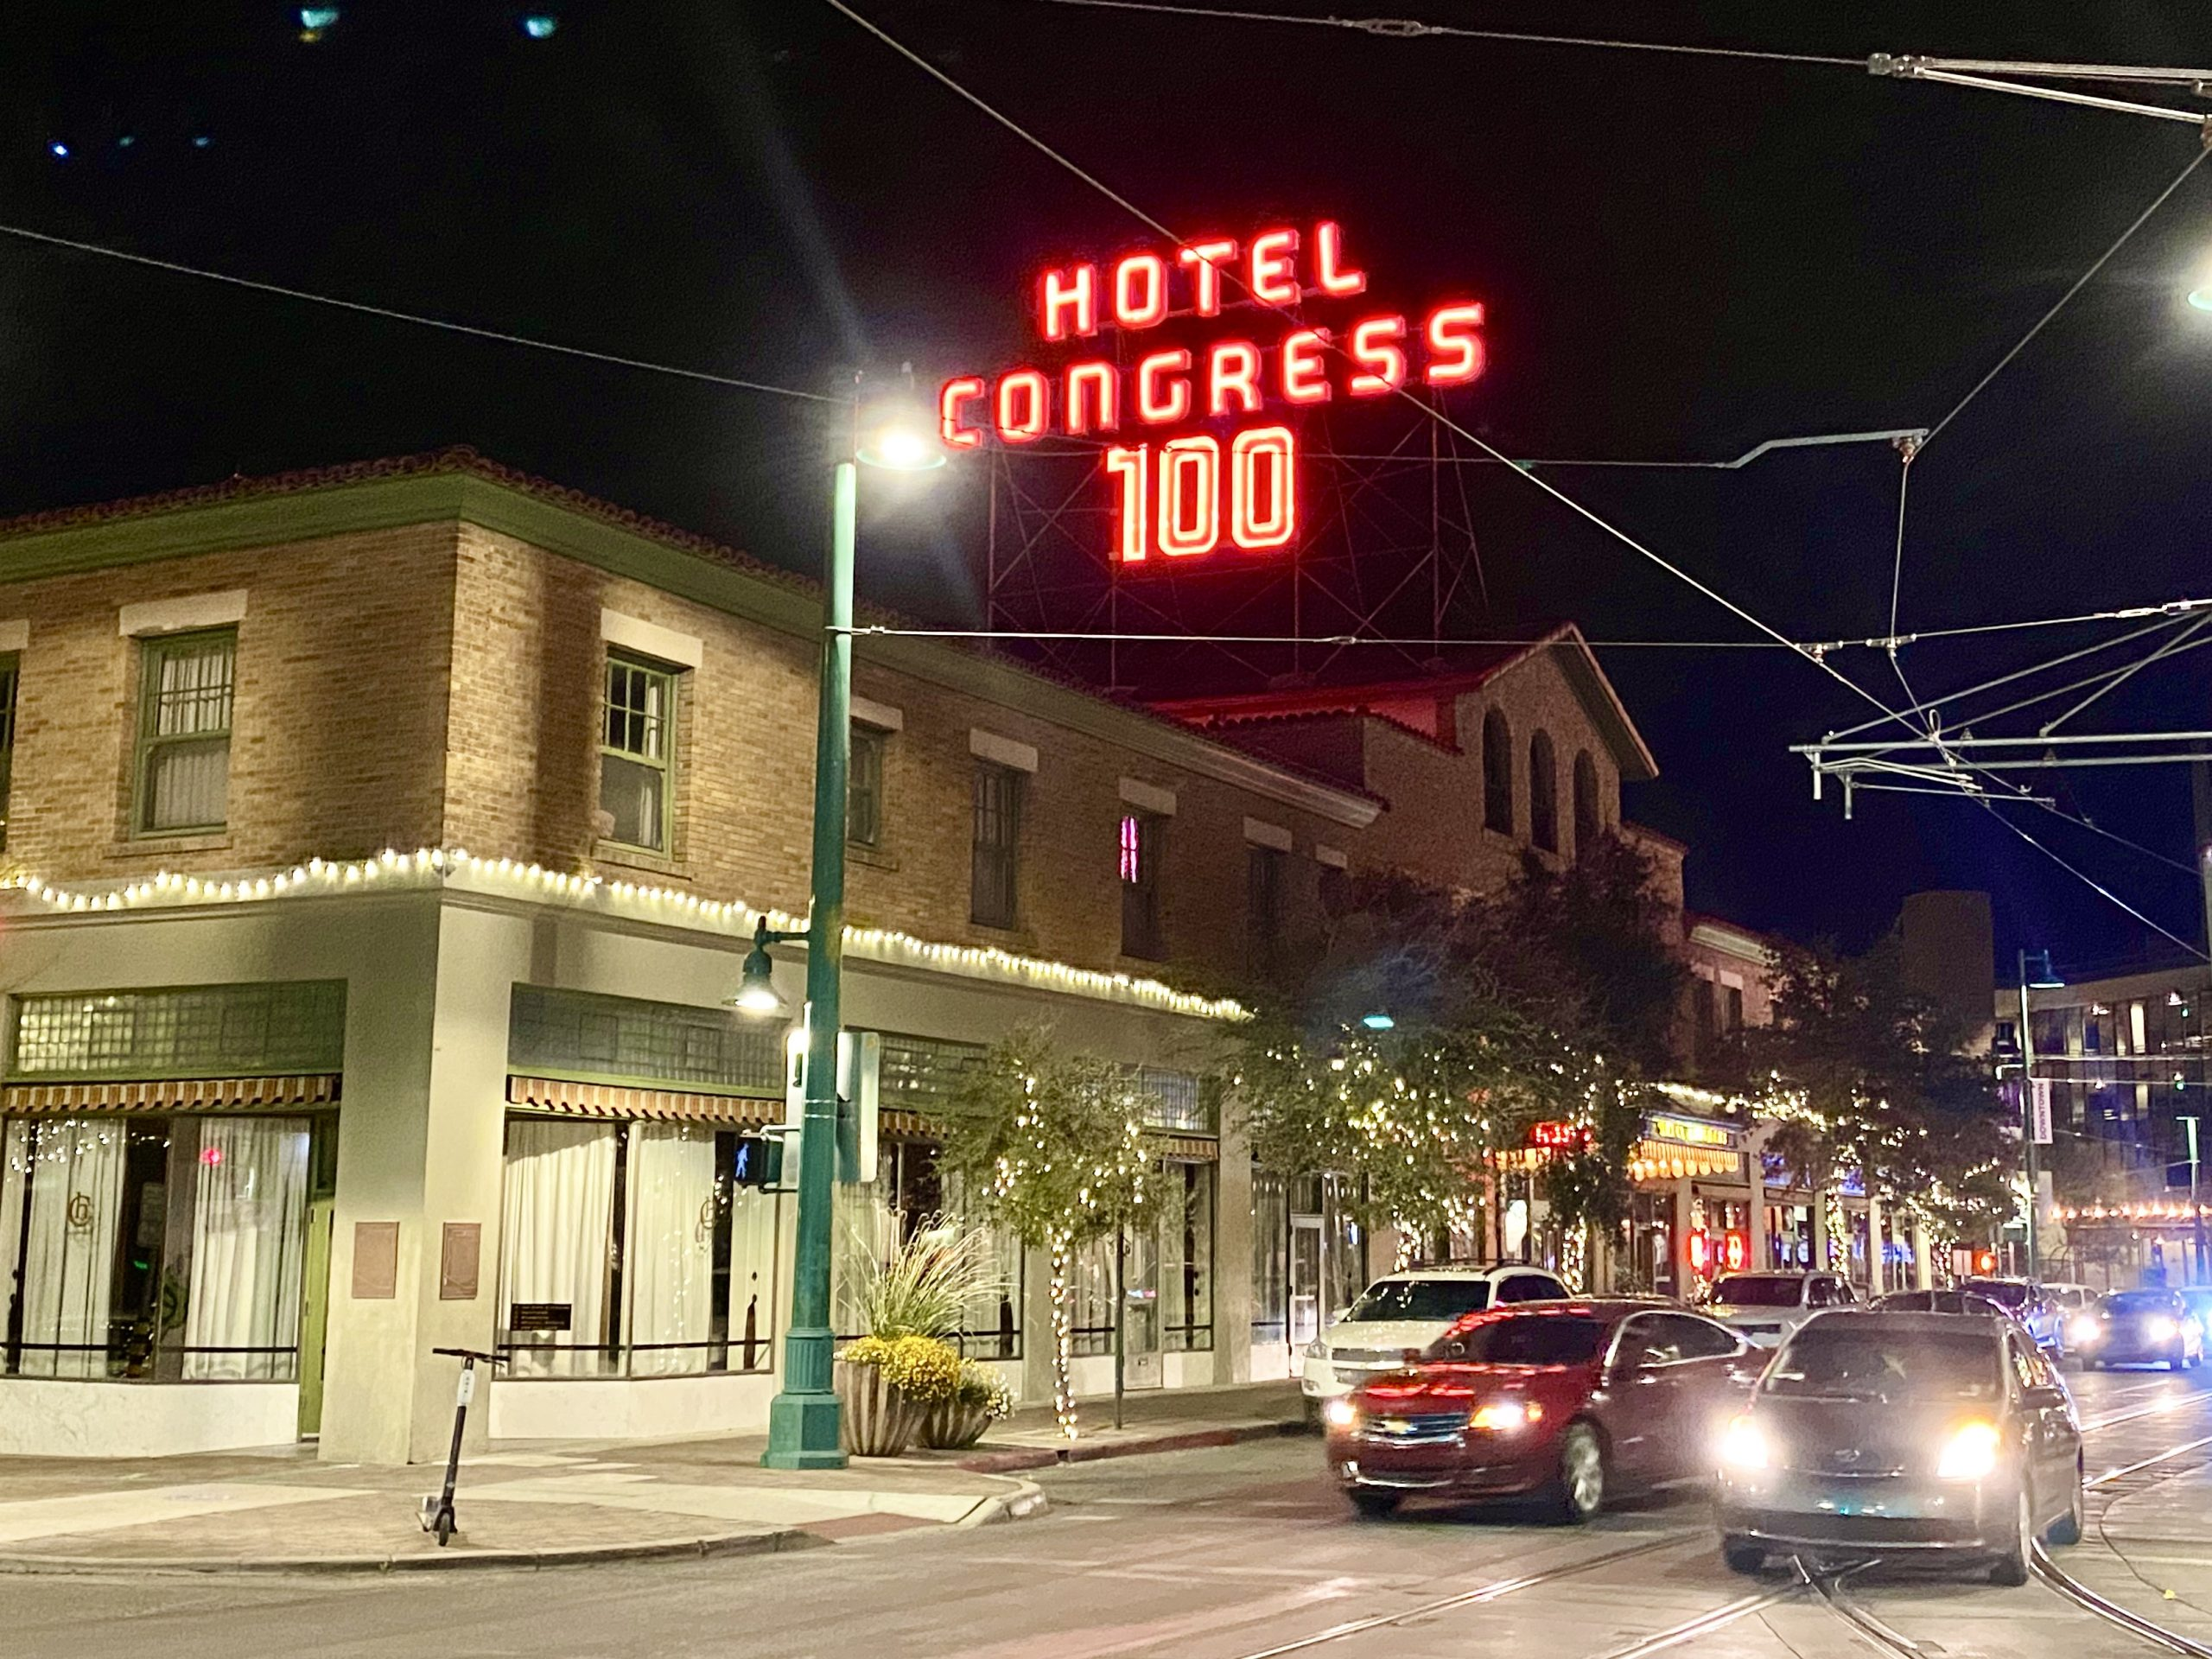 Hotel Congress in downtown Tucson, Arizona is more than 100 years old.